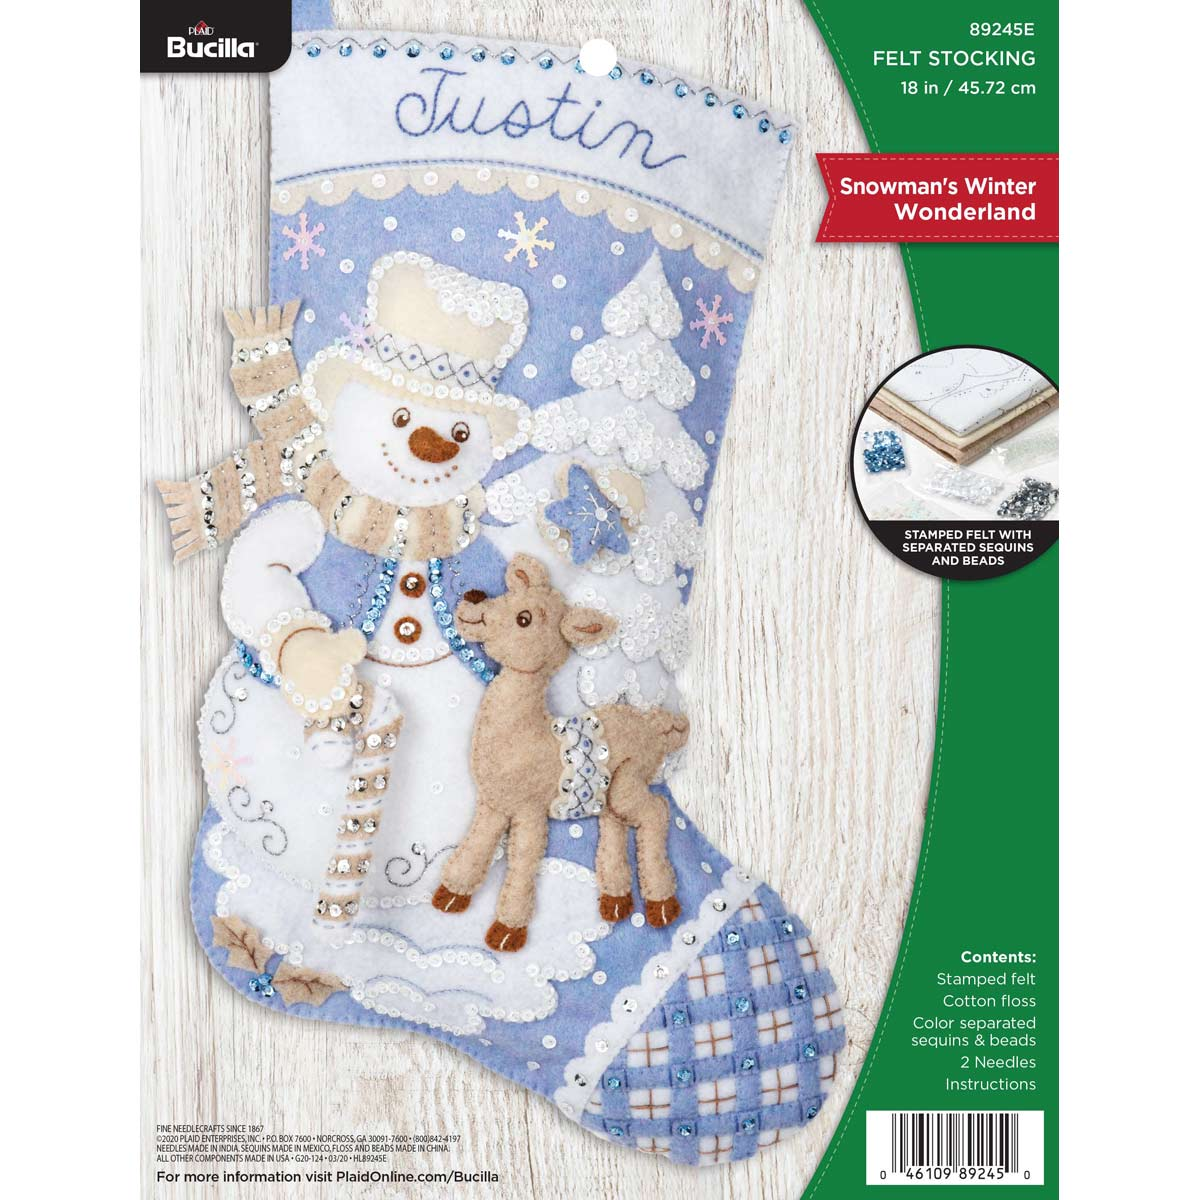 Bucilla ® Seasonal - Felt - Stocking Kits - Snowman's Winter Wonderland - 89245E